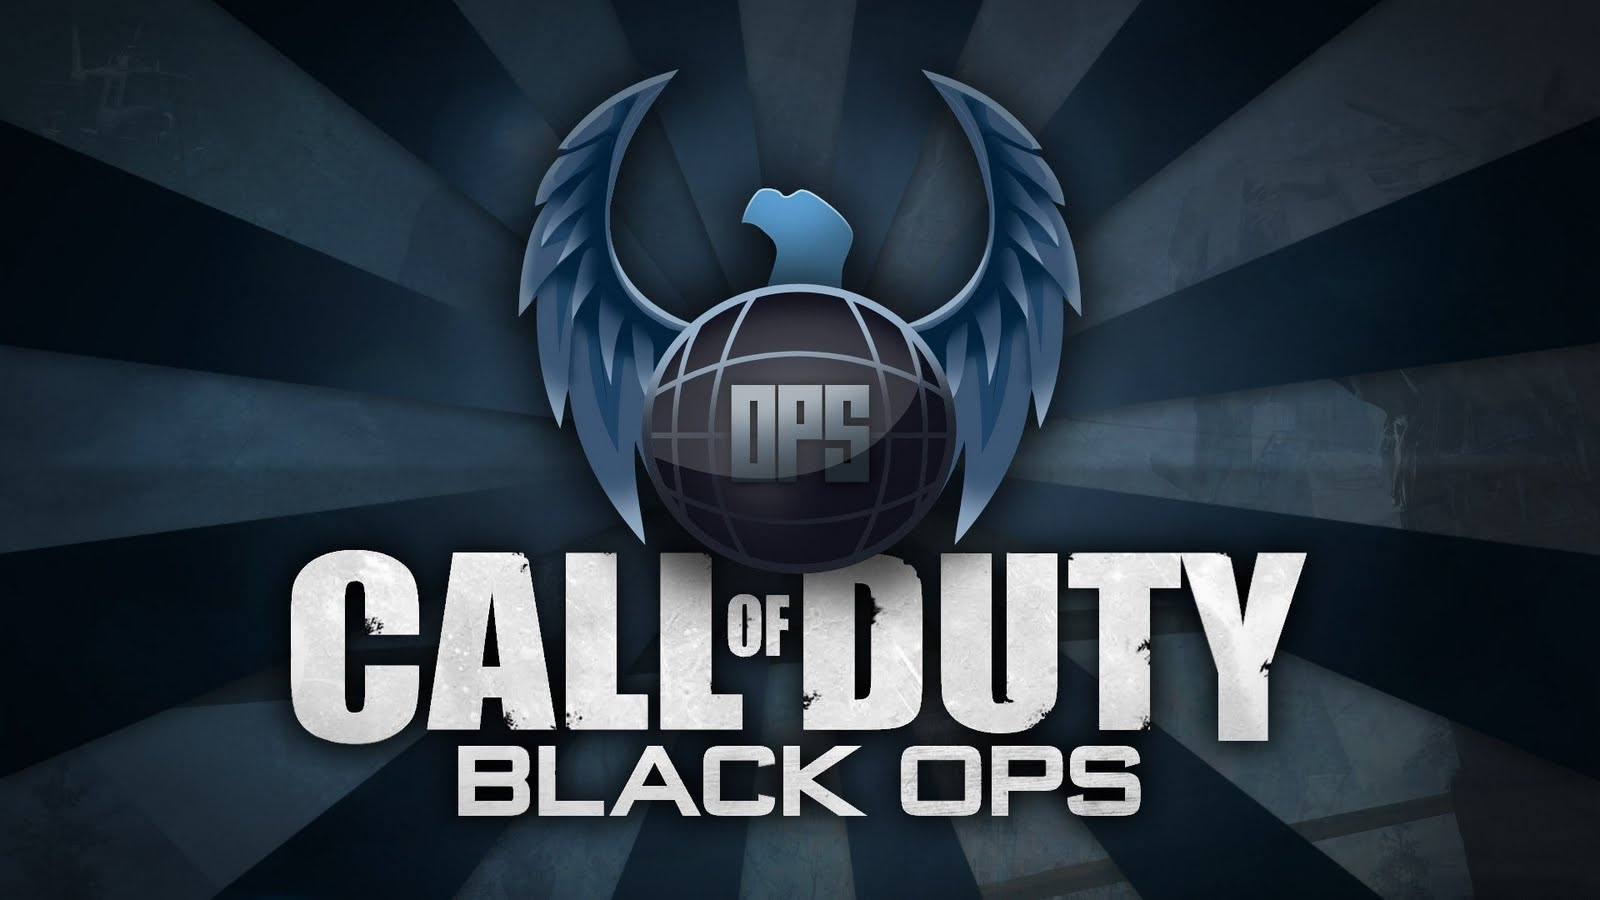 Call of Duty Black Ops Skull Logo HD Wallpaper ~ picture for wallpaper